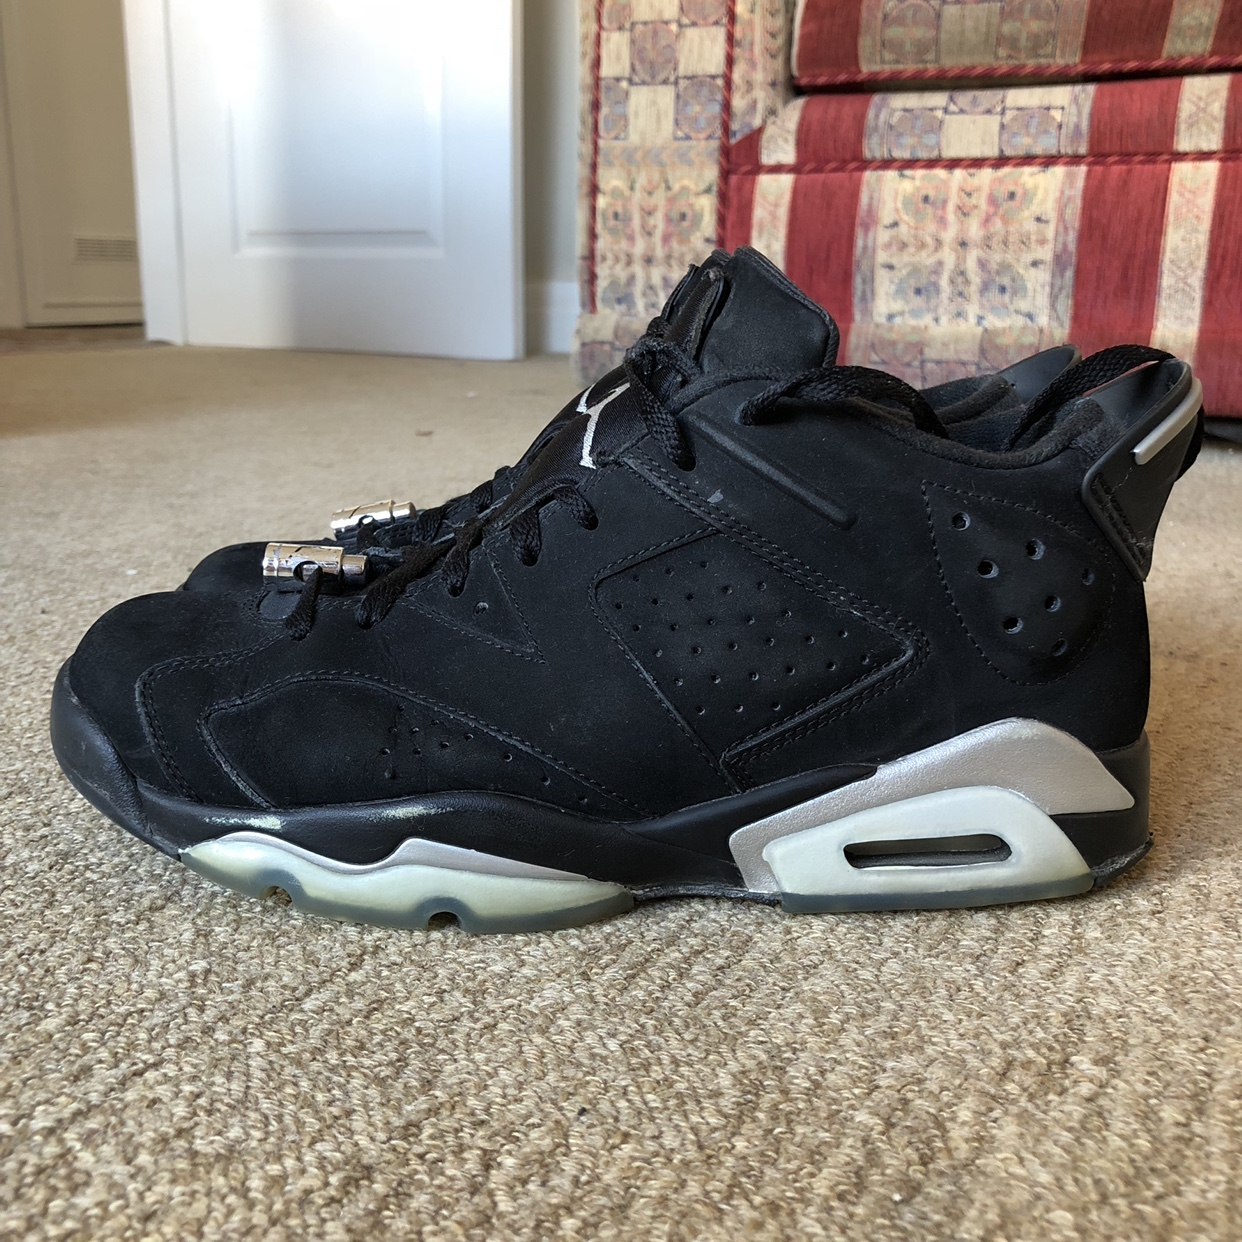 new arrival 8d02c 6fe0d Air Jordan 6 Retro Low Chrome - Depop